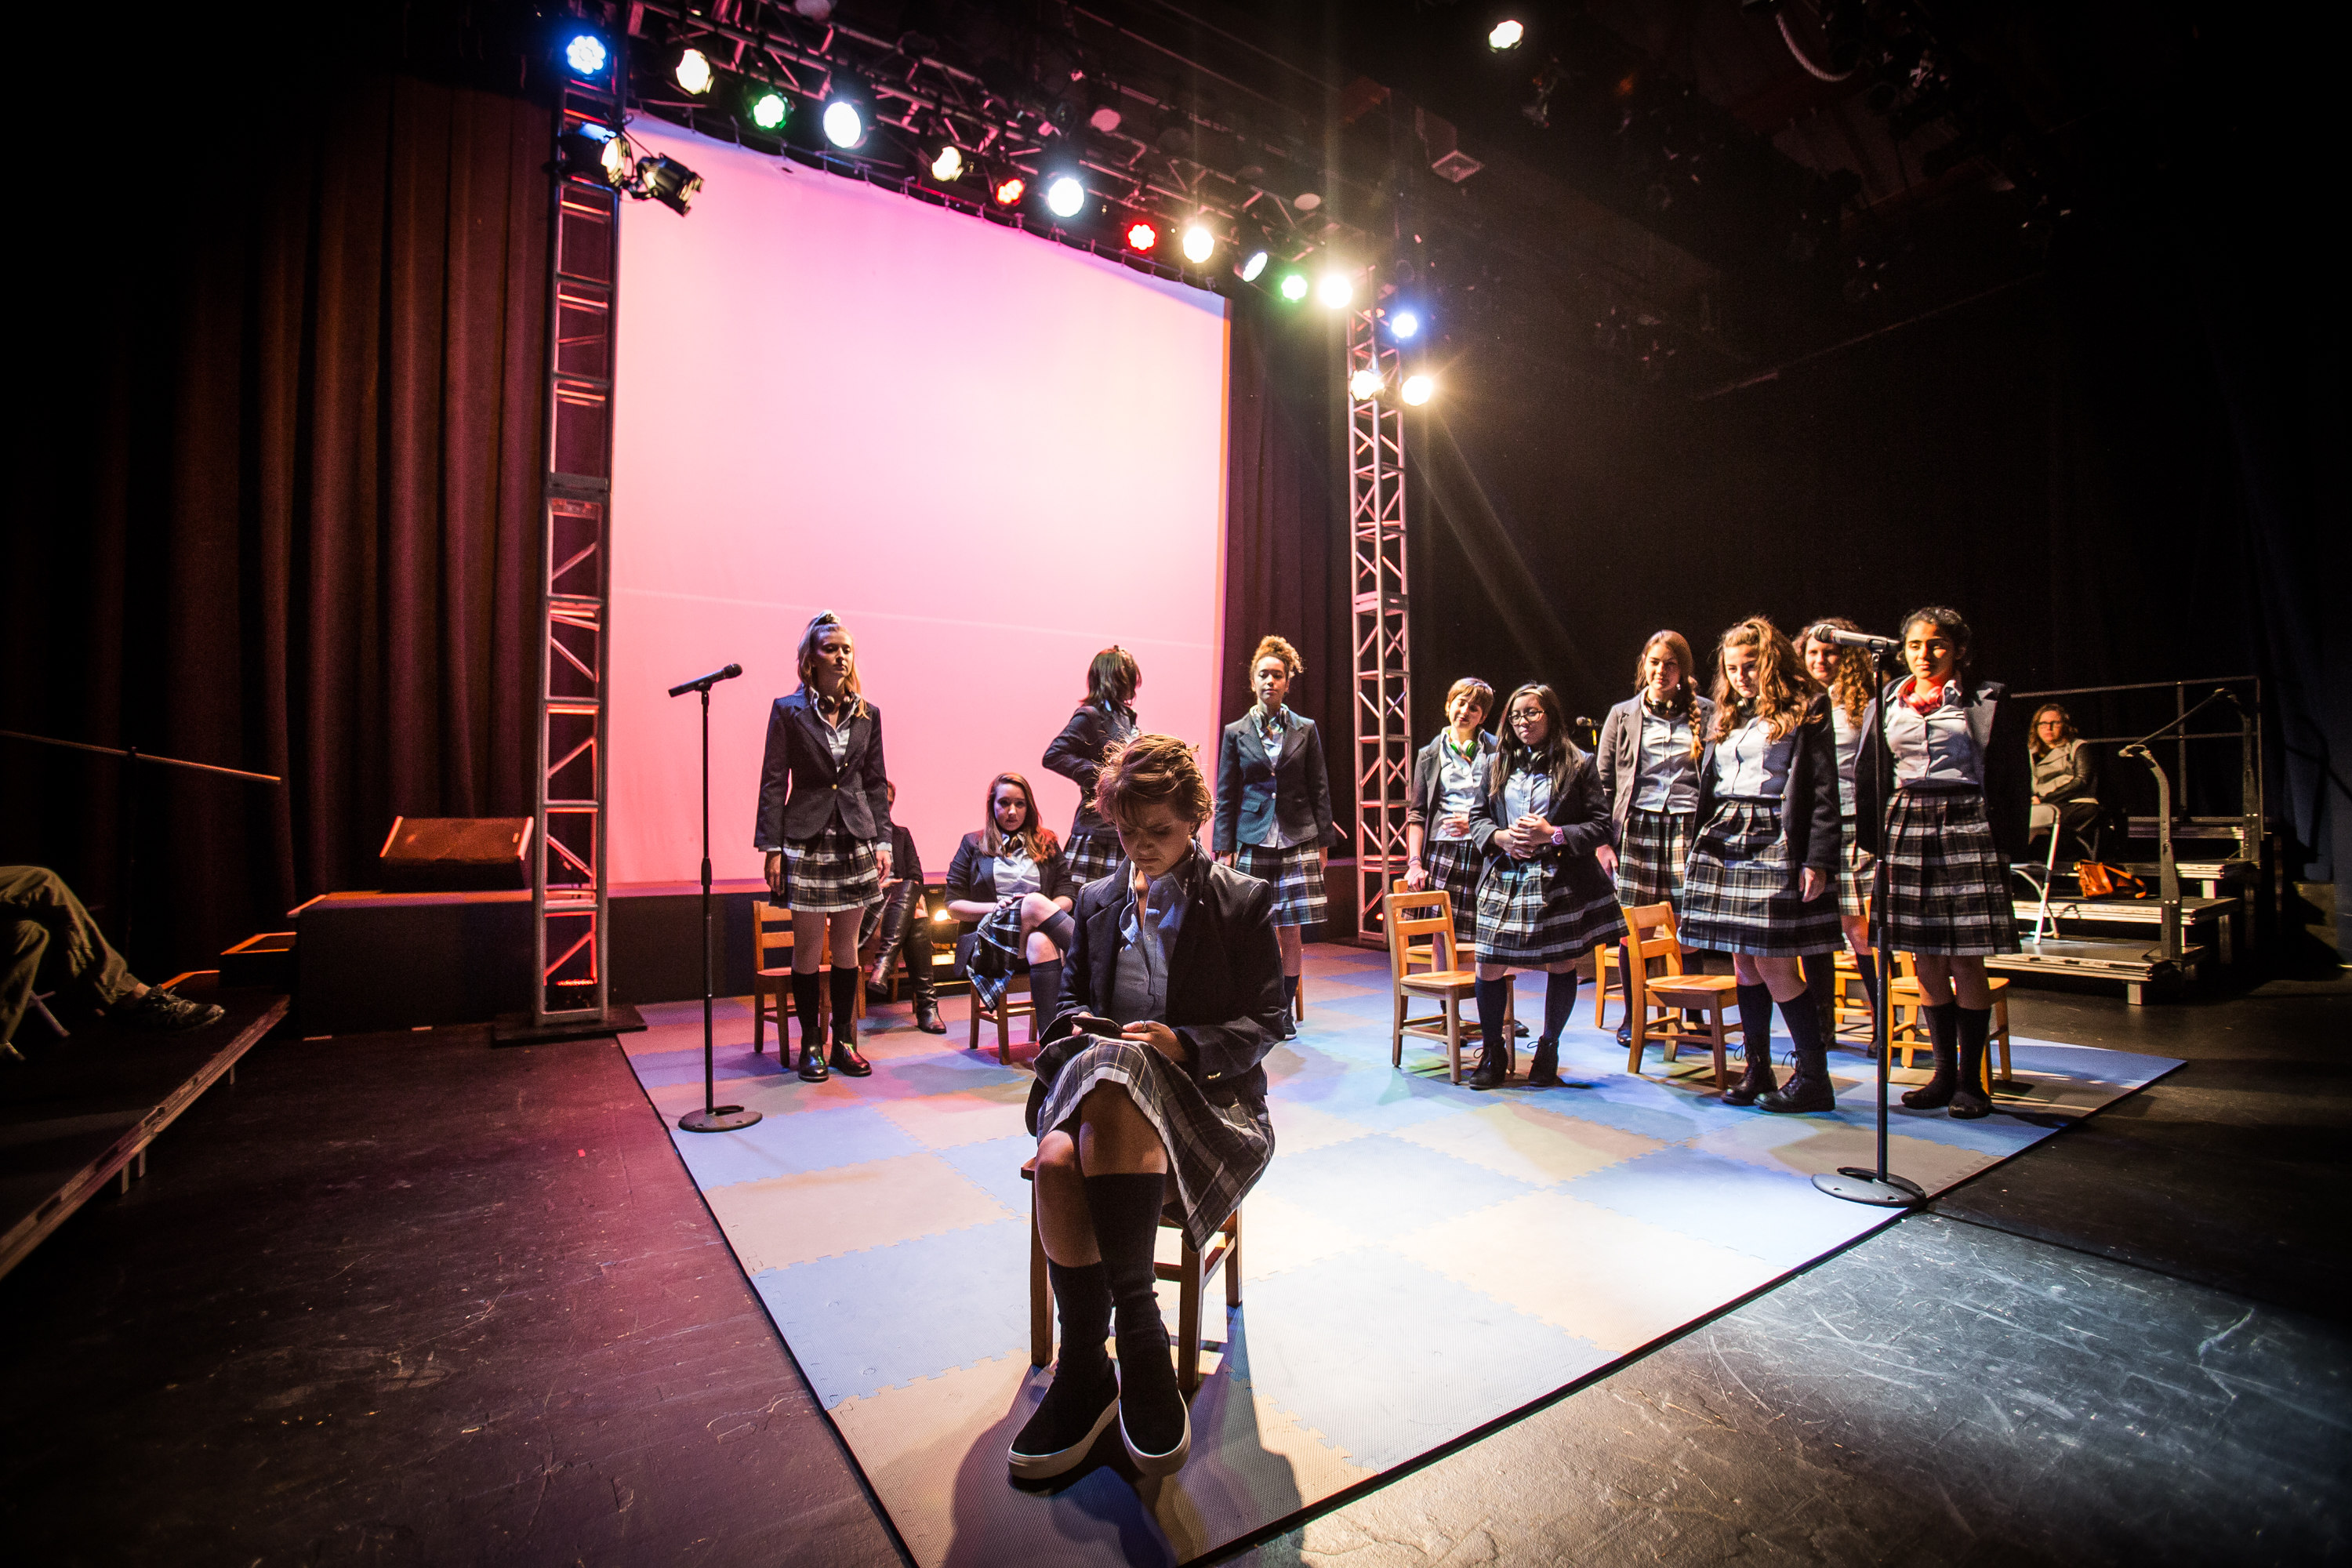 The school play is about WHAT!? Controversy on stage and why